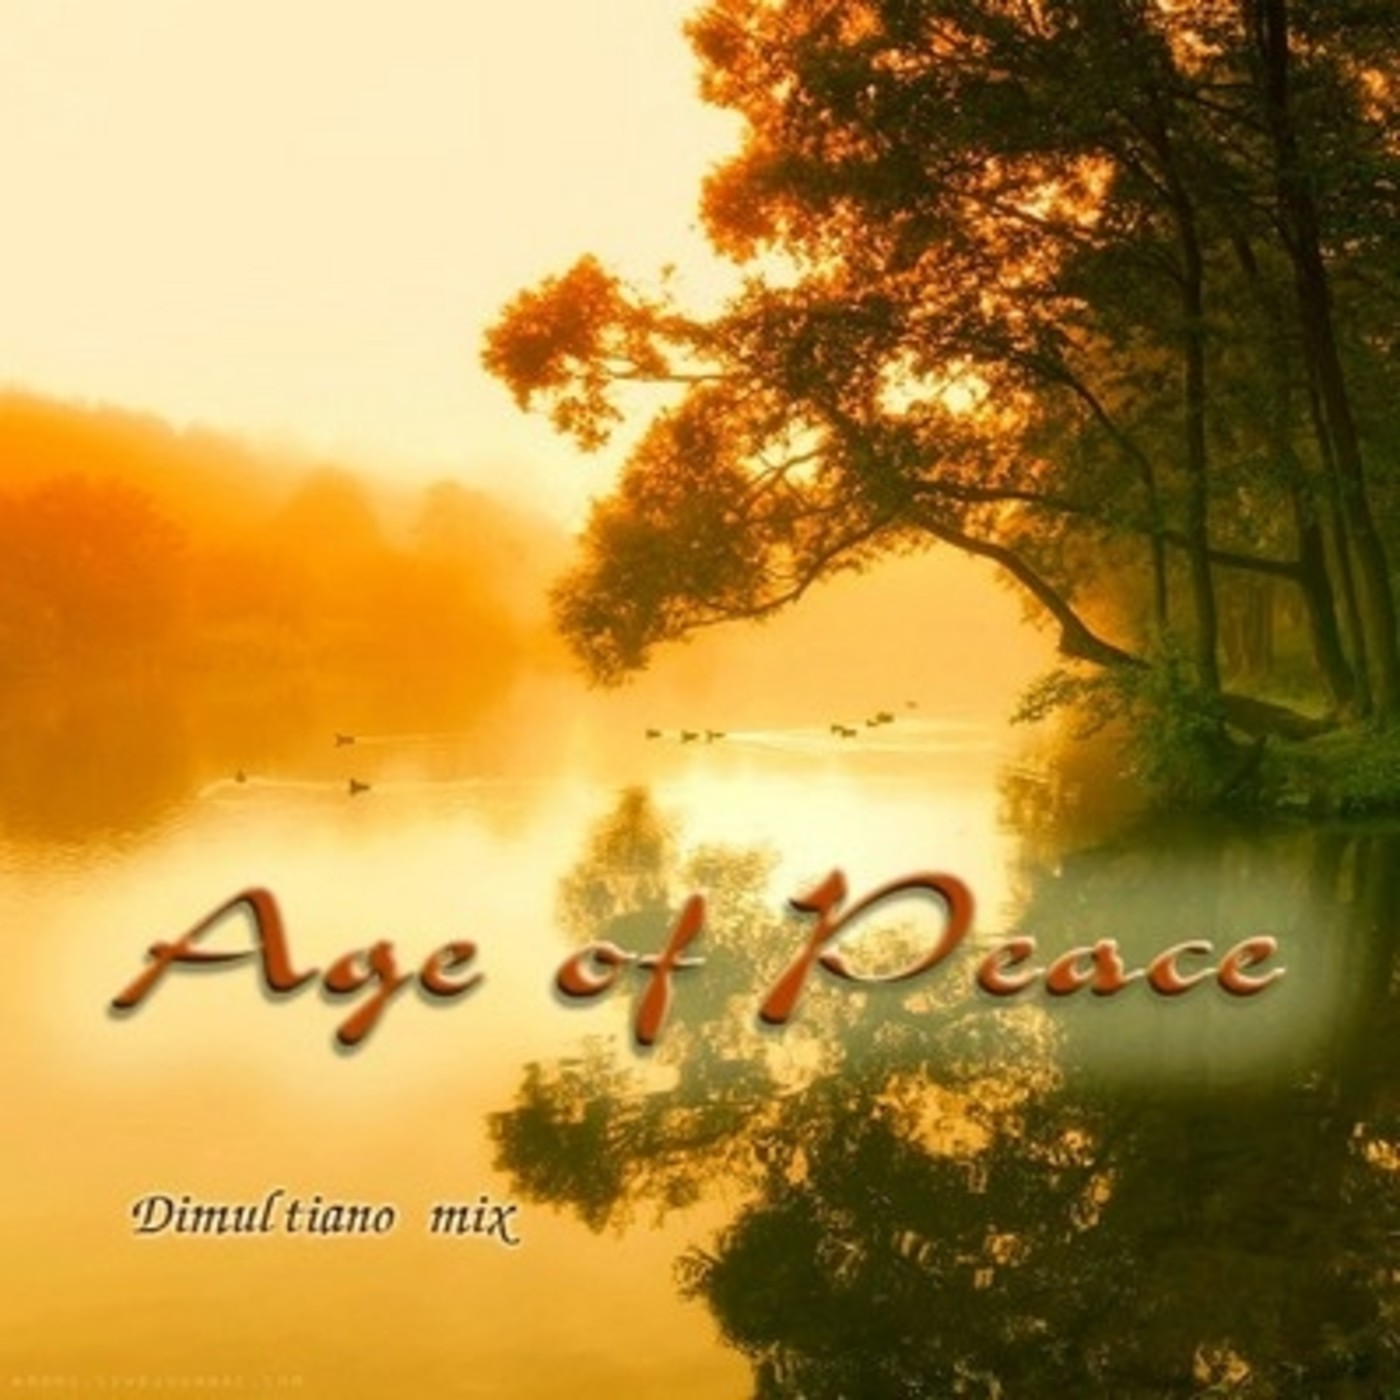 Dimultiano mix - Age of Peace